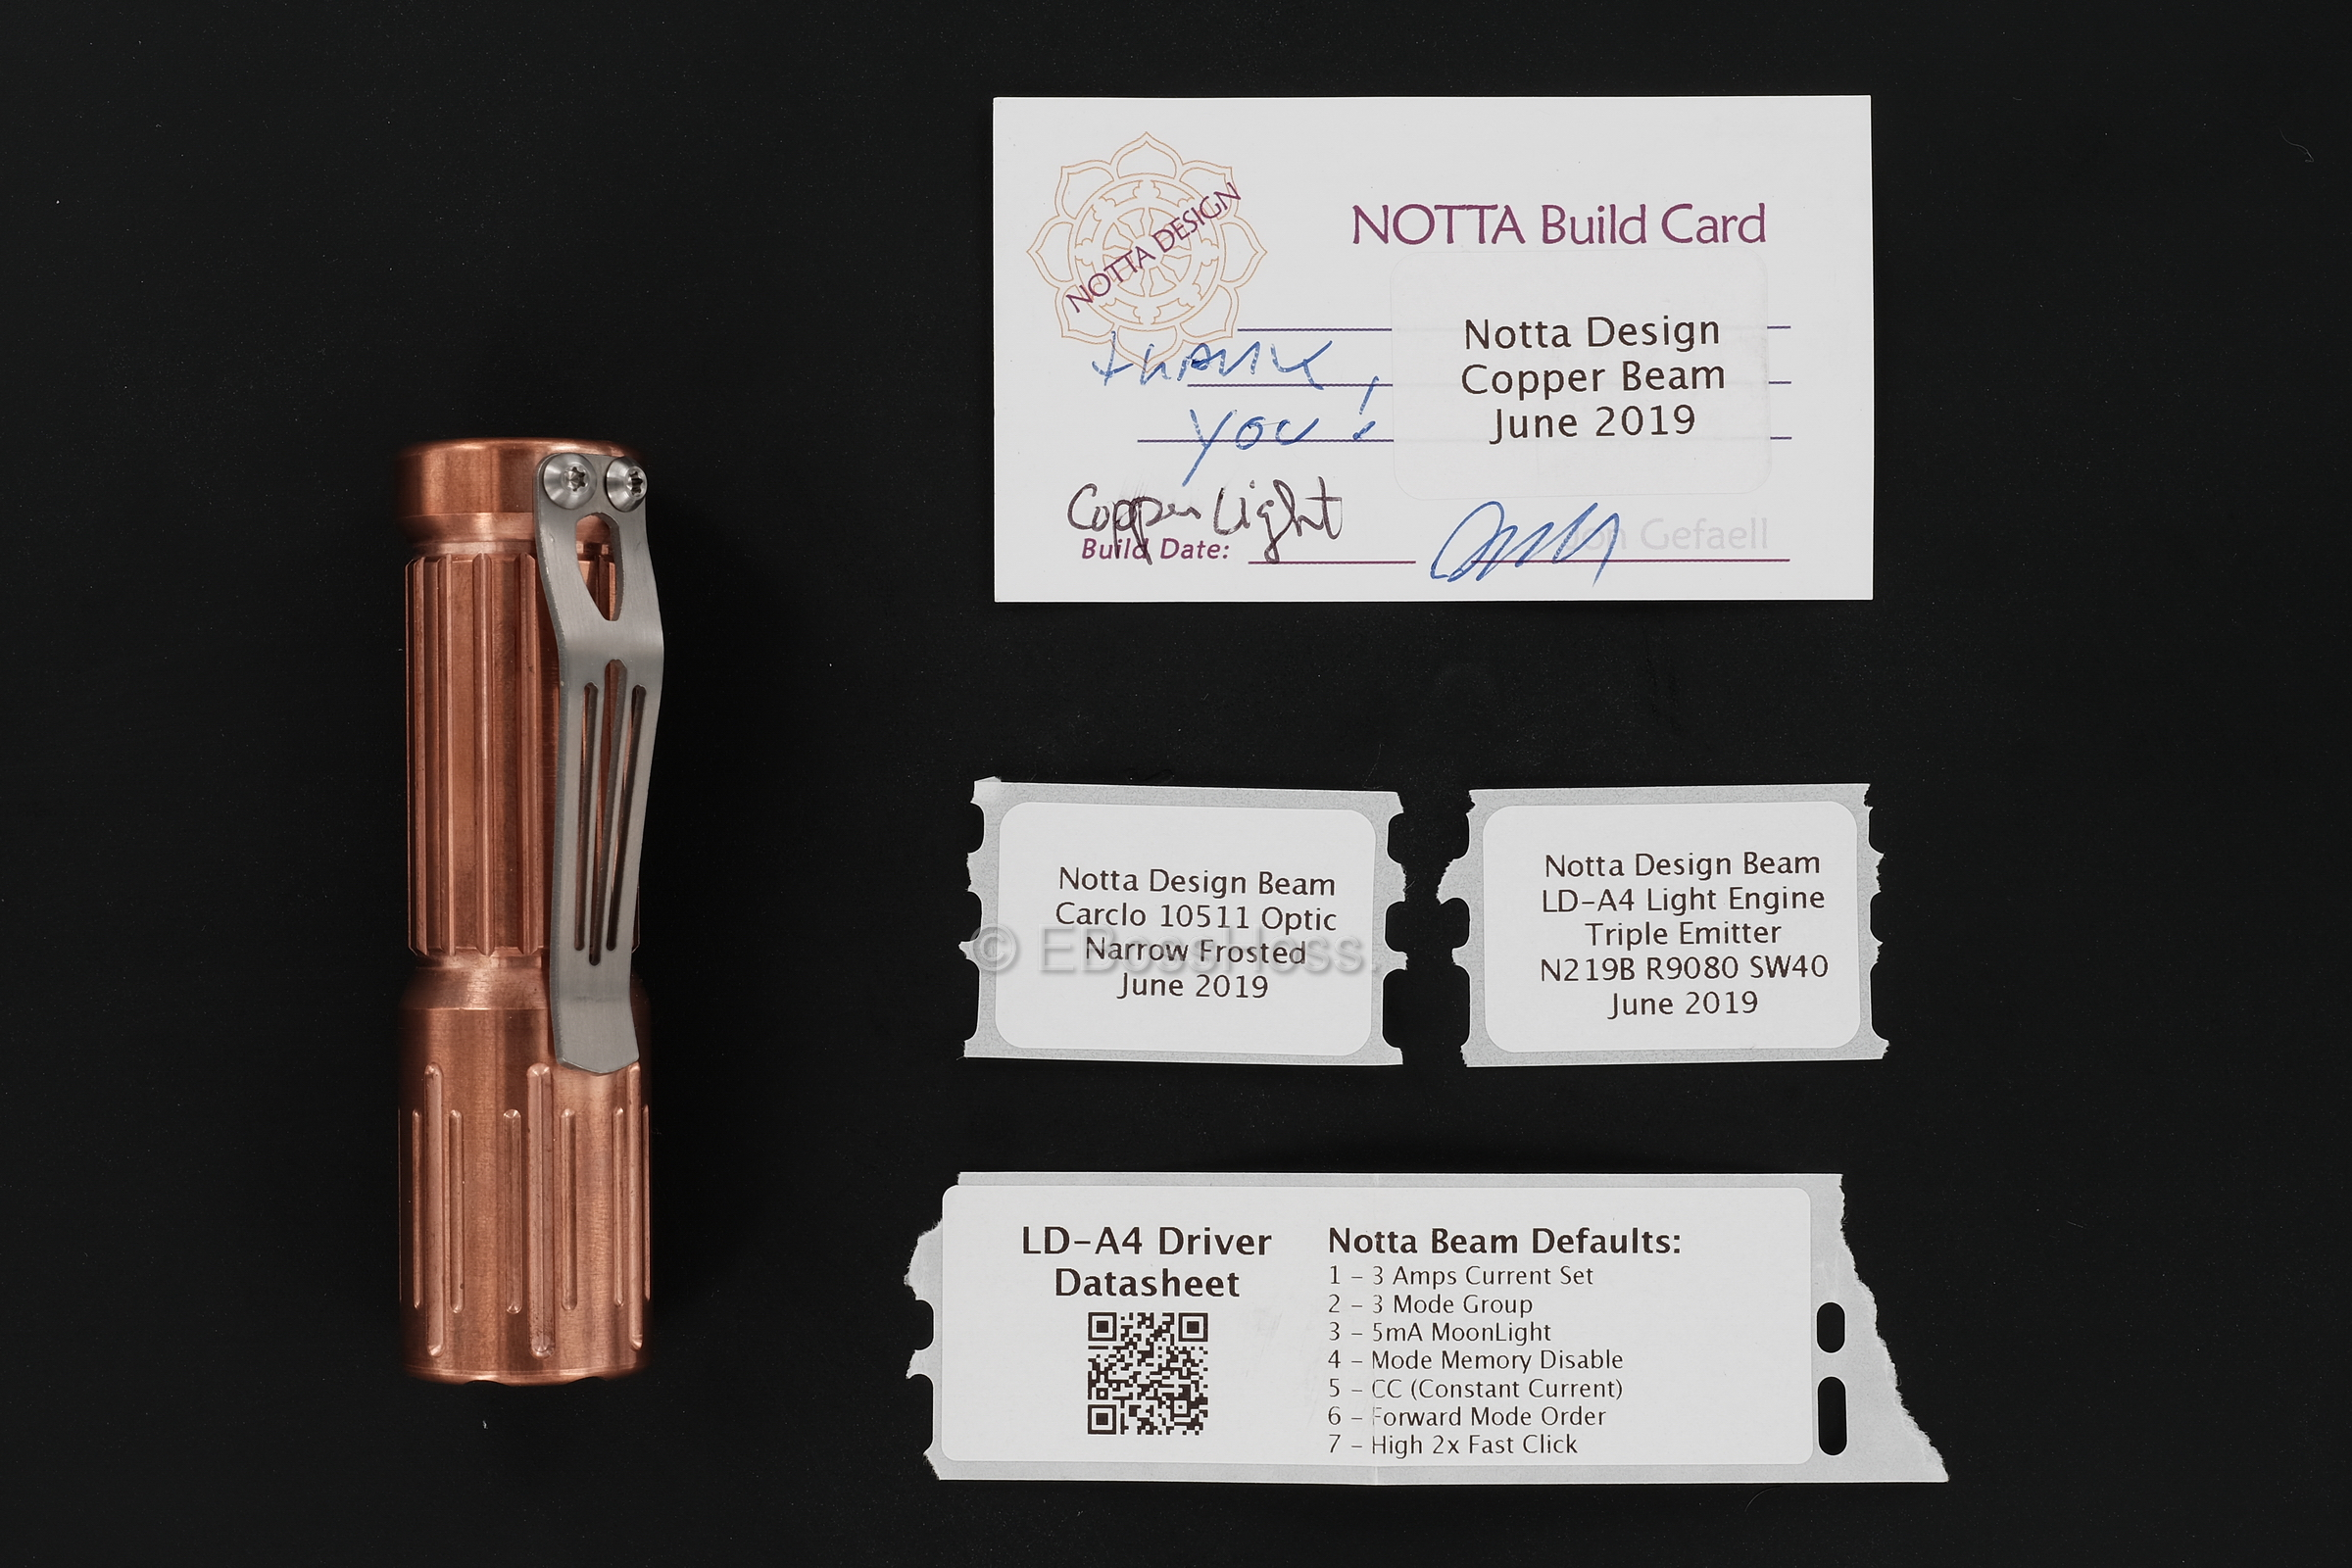 Notta Design by Jon Gefaell Copper Beam Flashlight